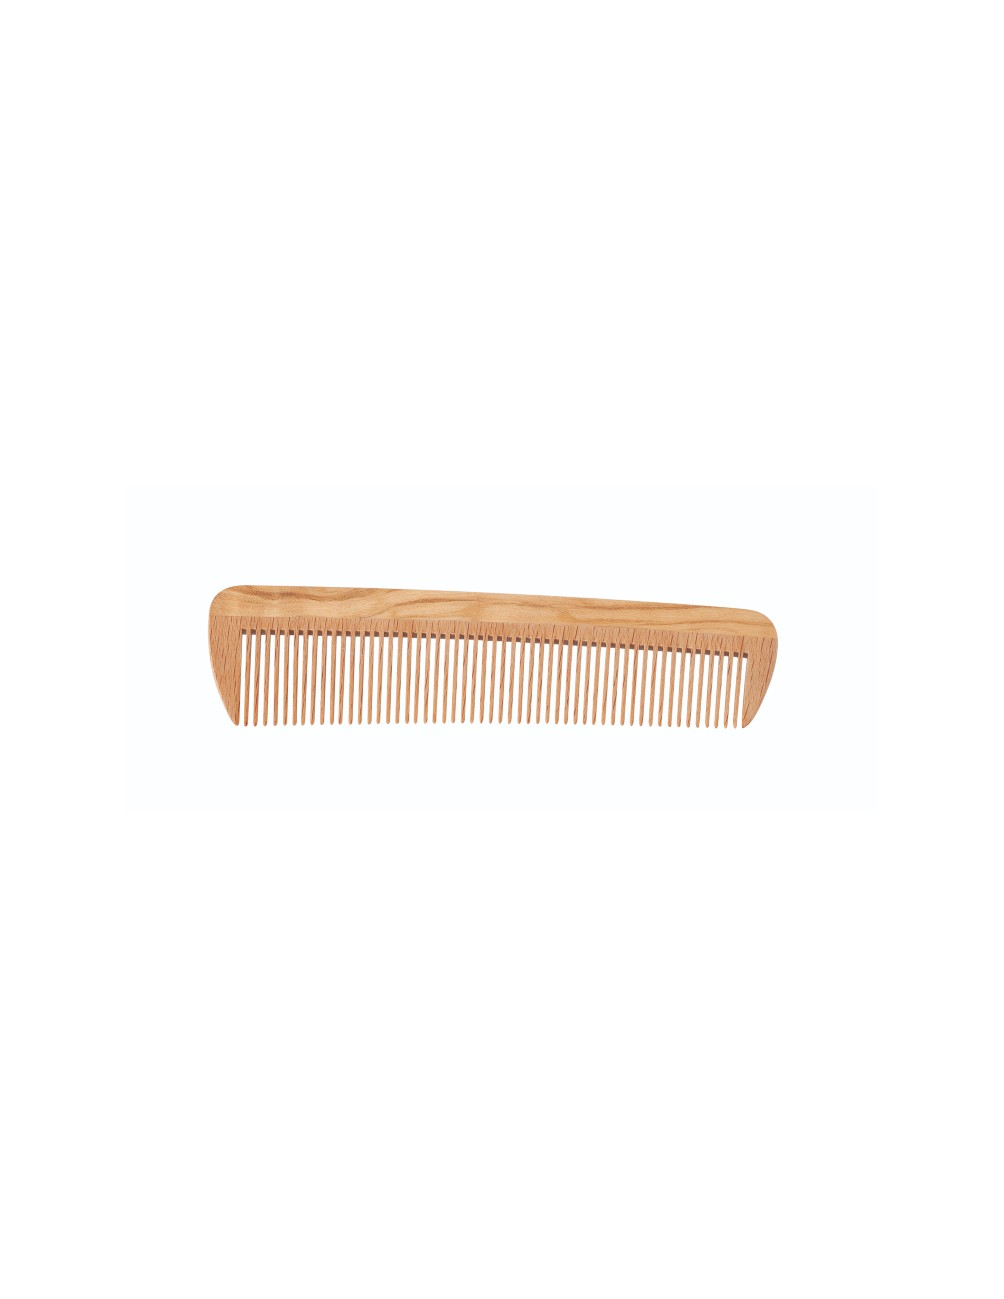 Pocket Comb Oiled Wood